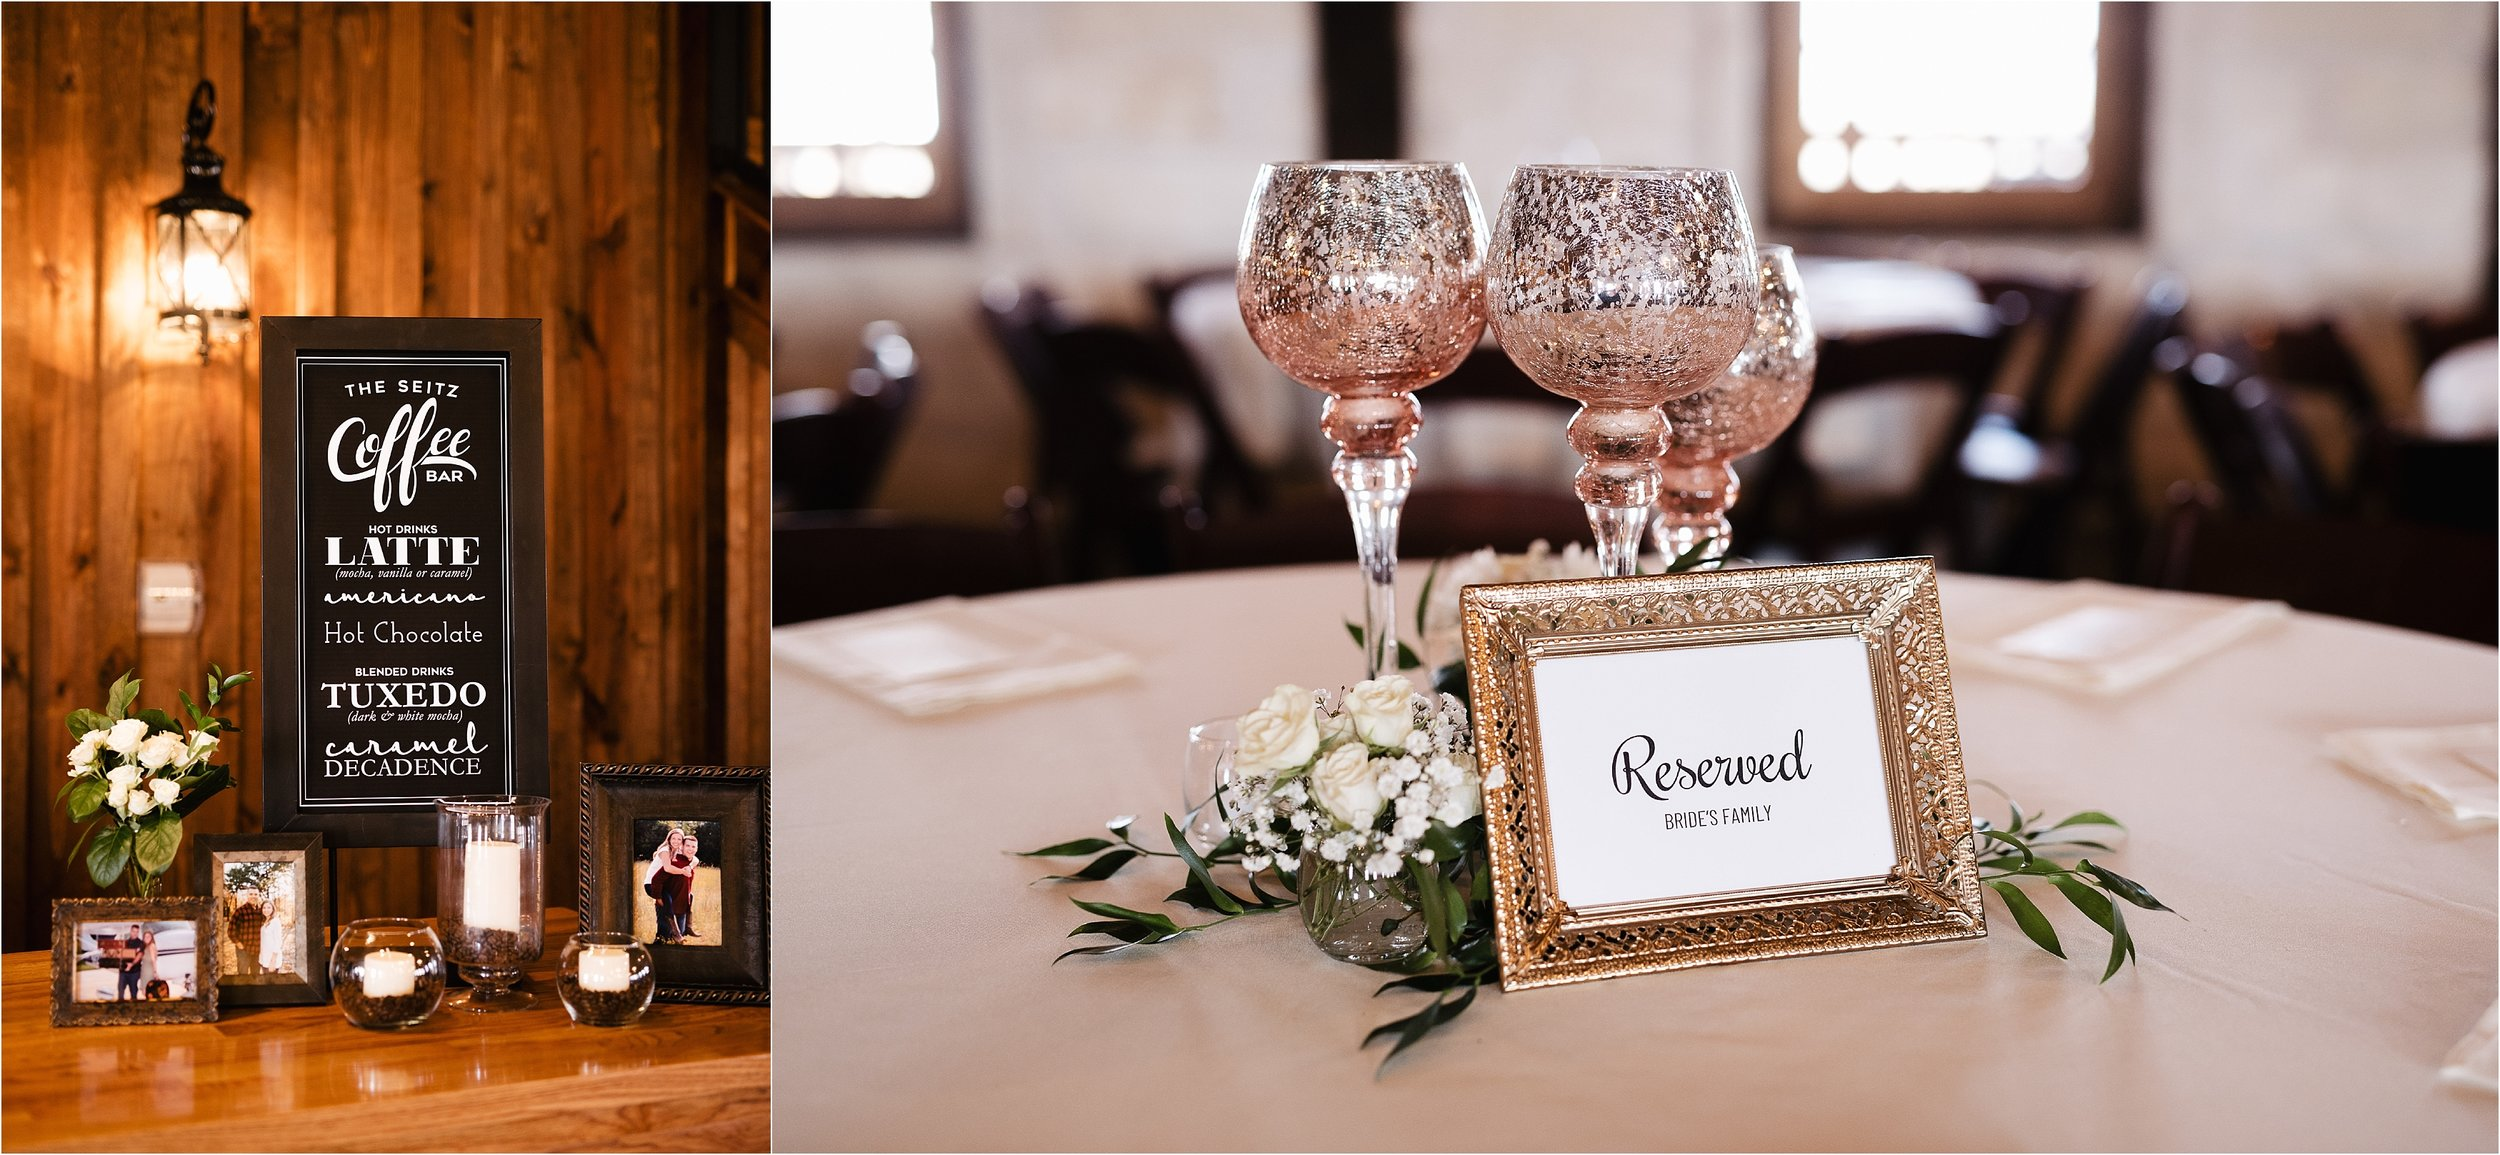 wedding photographer oklahoma reception decorations decor champagne table arrangements table numbers food